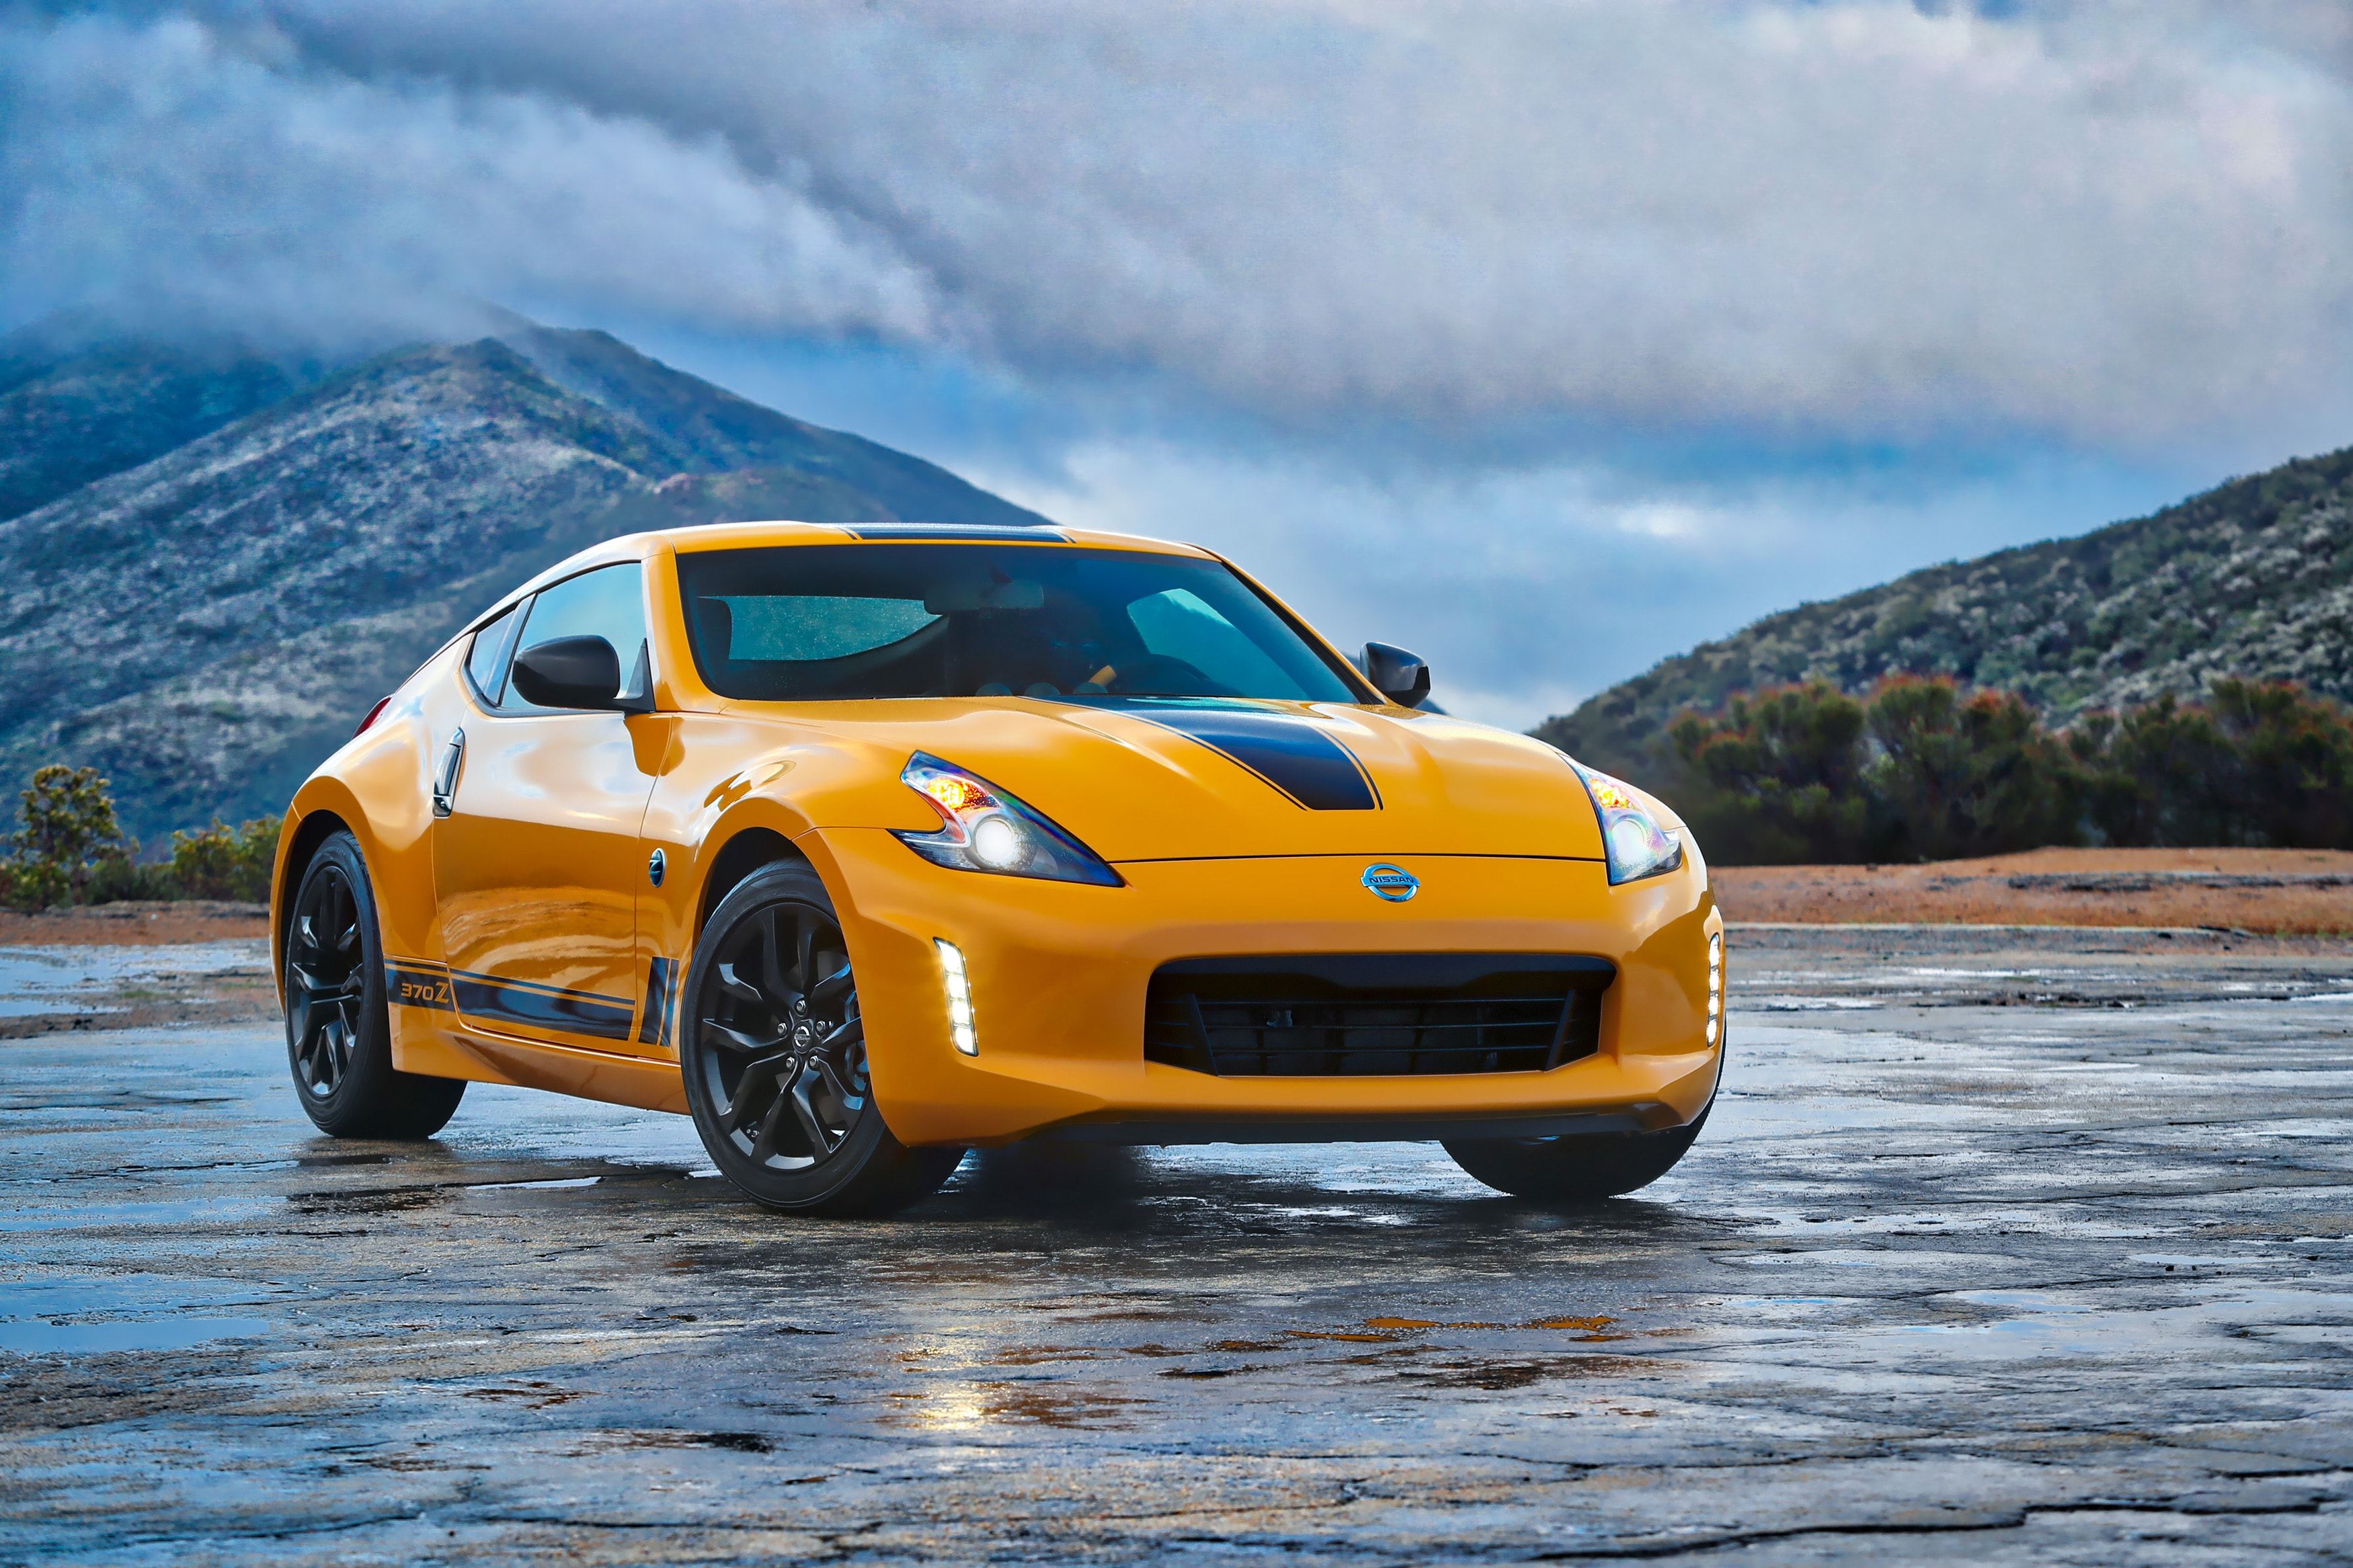 2018 Nissan 370Z Chicane Yellow Heritage Edition